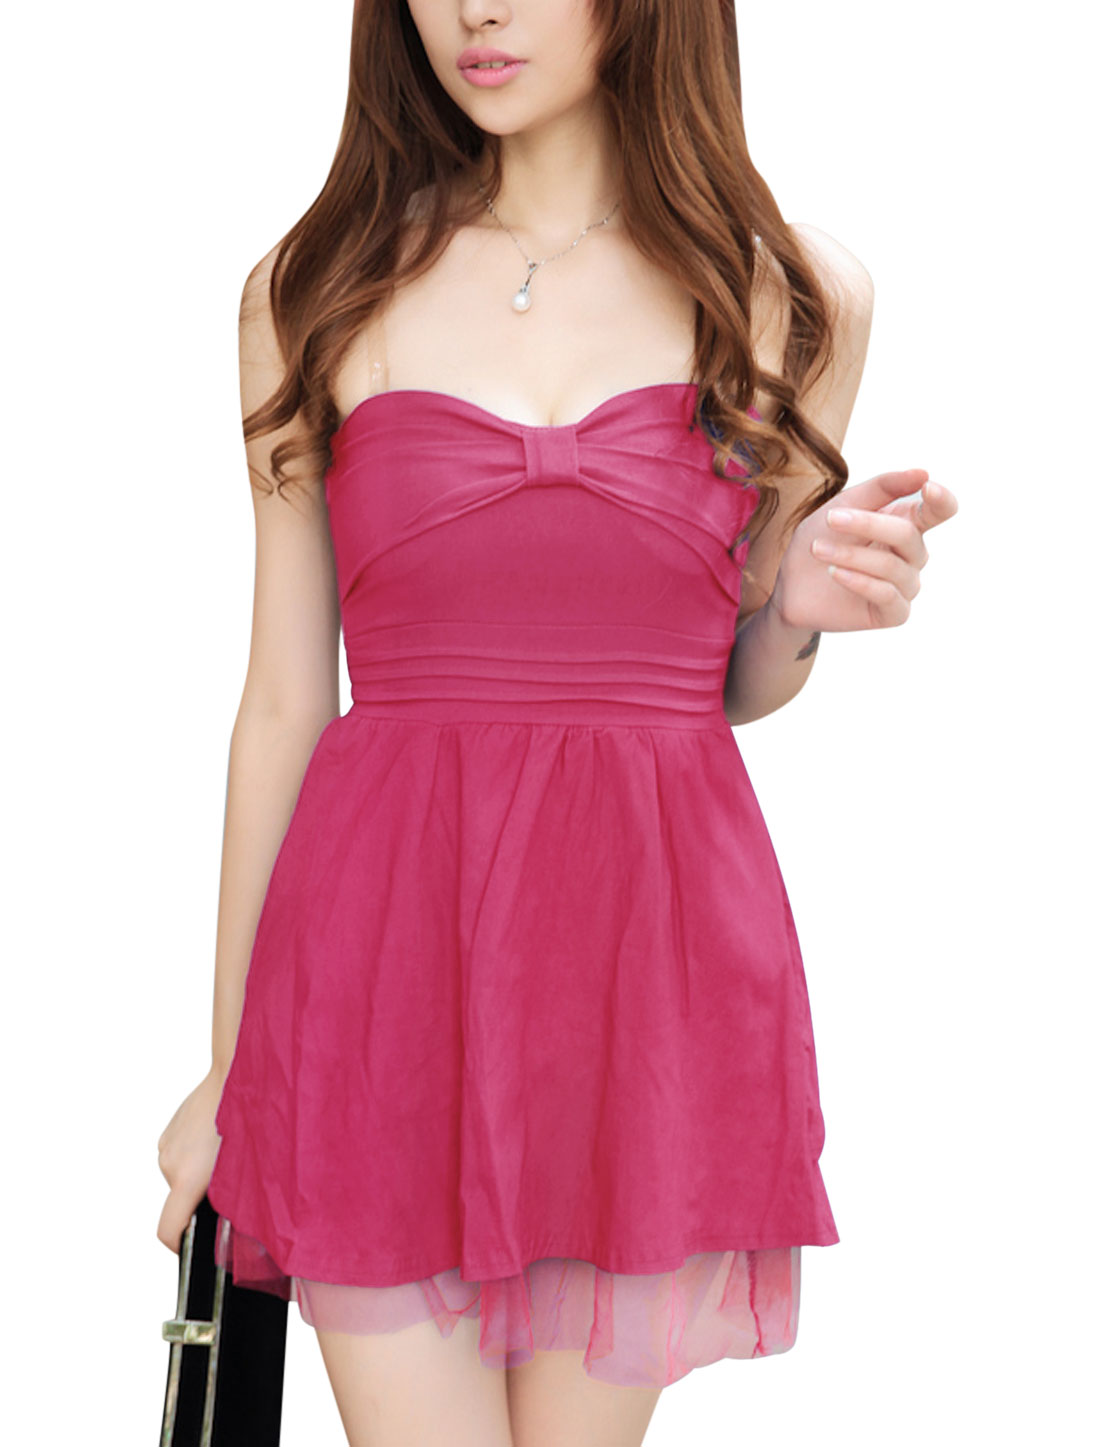 Ladies Fuchsia Lace-Up Back Mesh Splice Full Lined Corset Dress XS